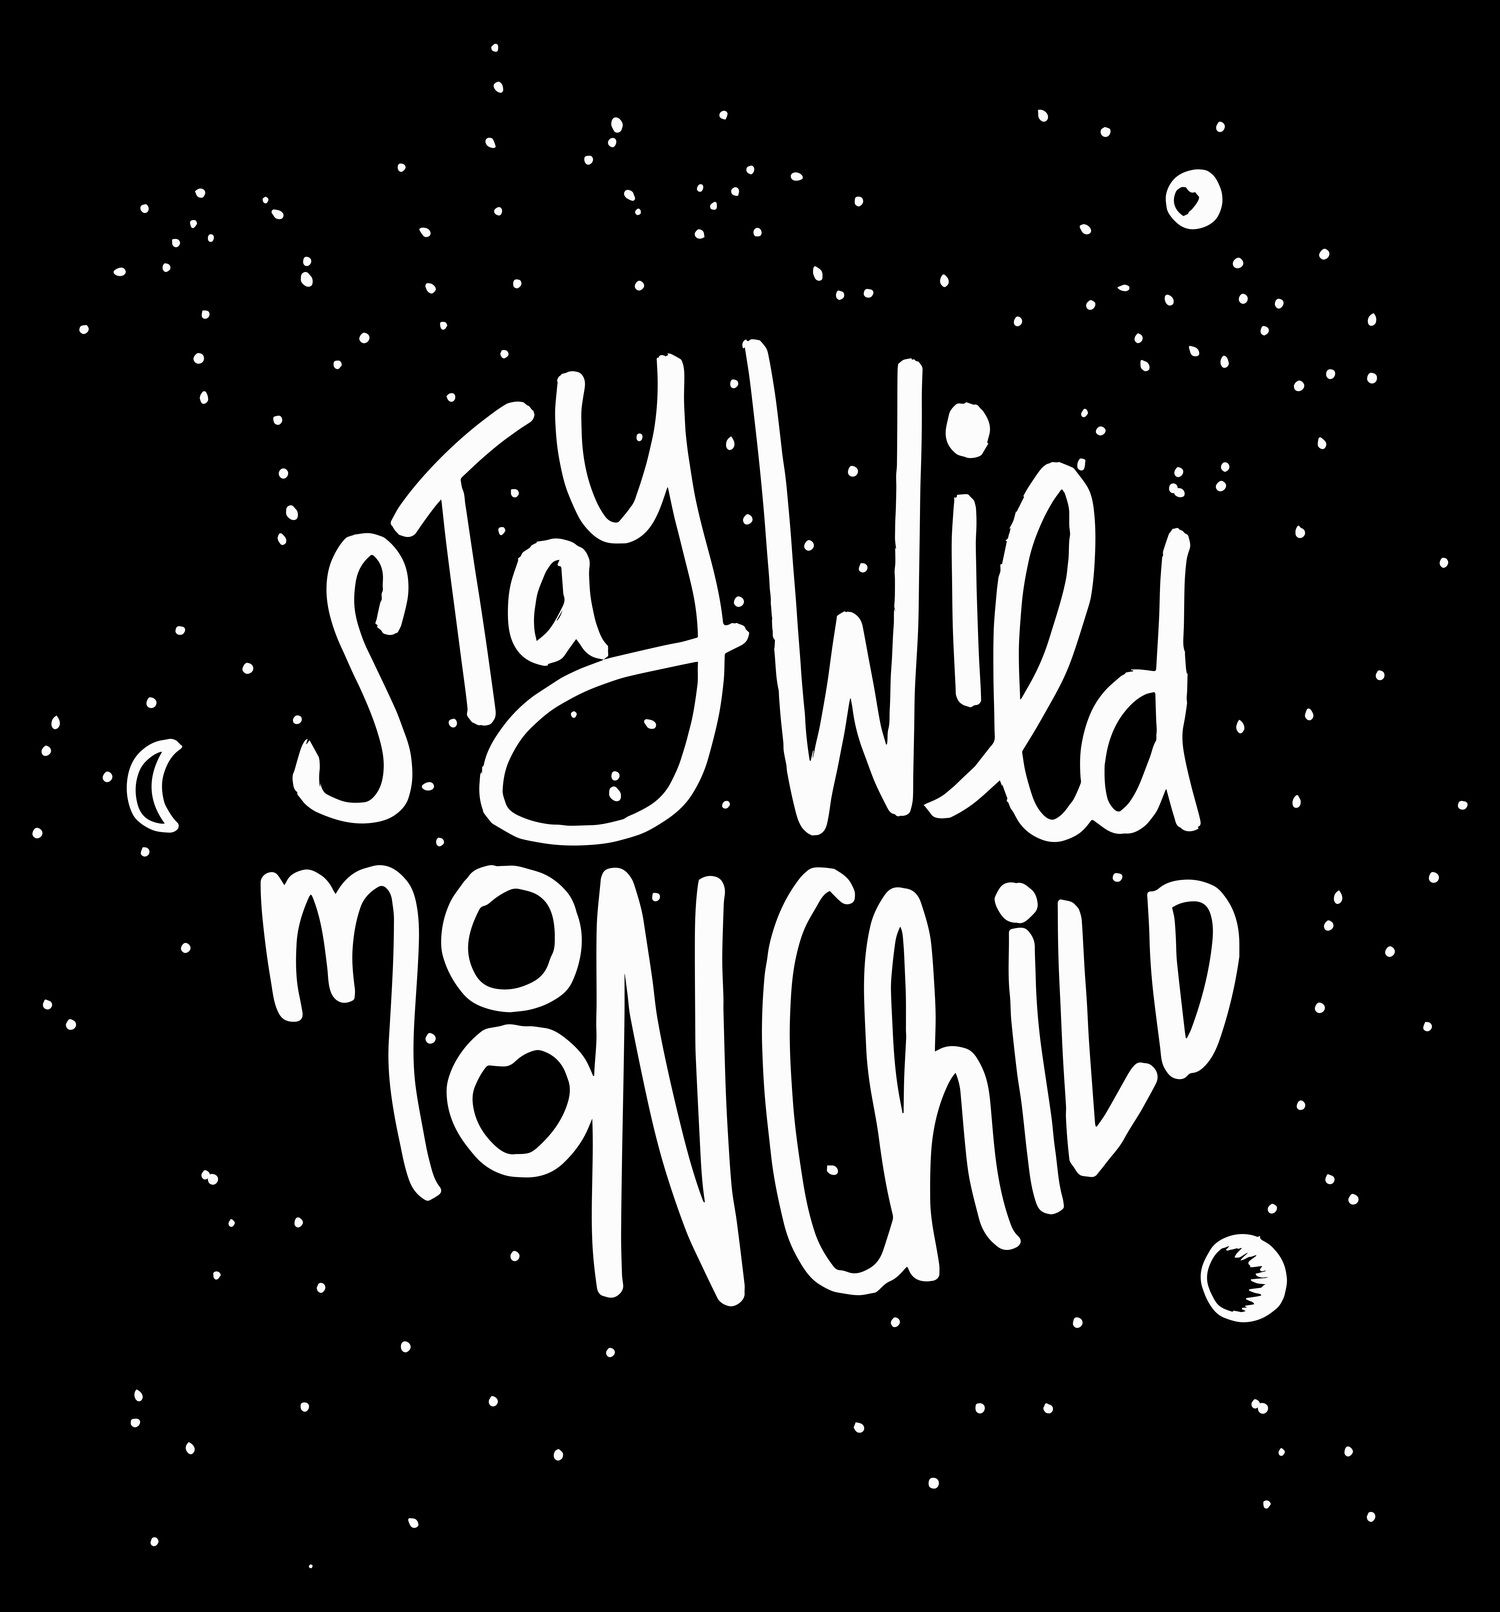 Tattoo Quotes About Child: Stay Wild Moon Child – Personal Project …